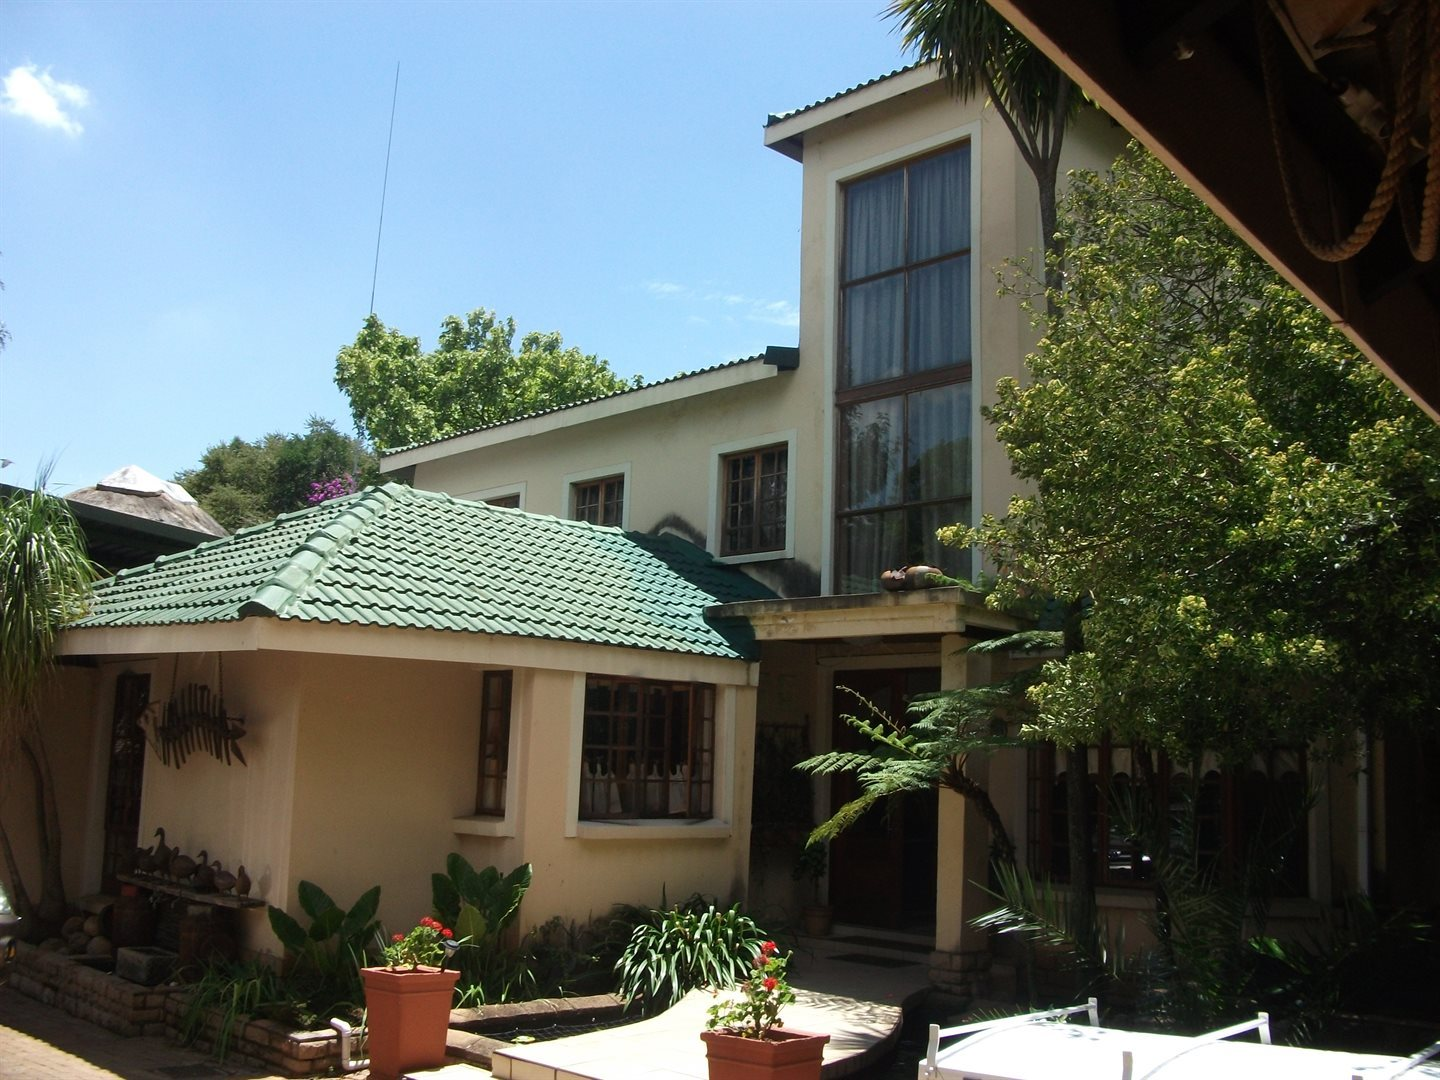 Centurion, Doringkloof Property  | Houses For Sale Doringkloof, Doringkloof, House 5 bedrooms property for sale Price:2,700,000